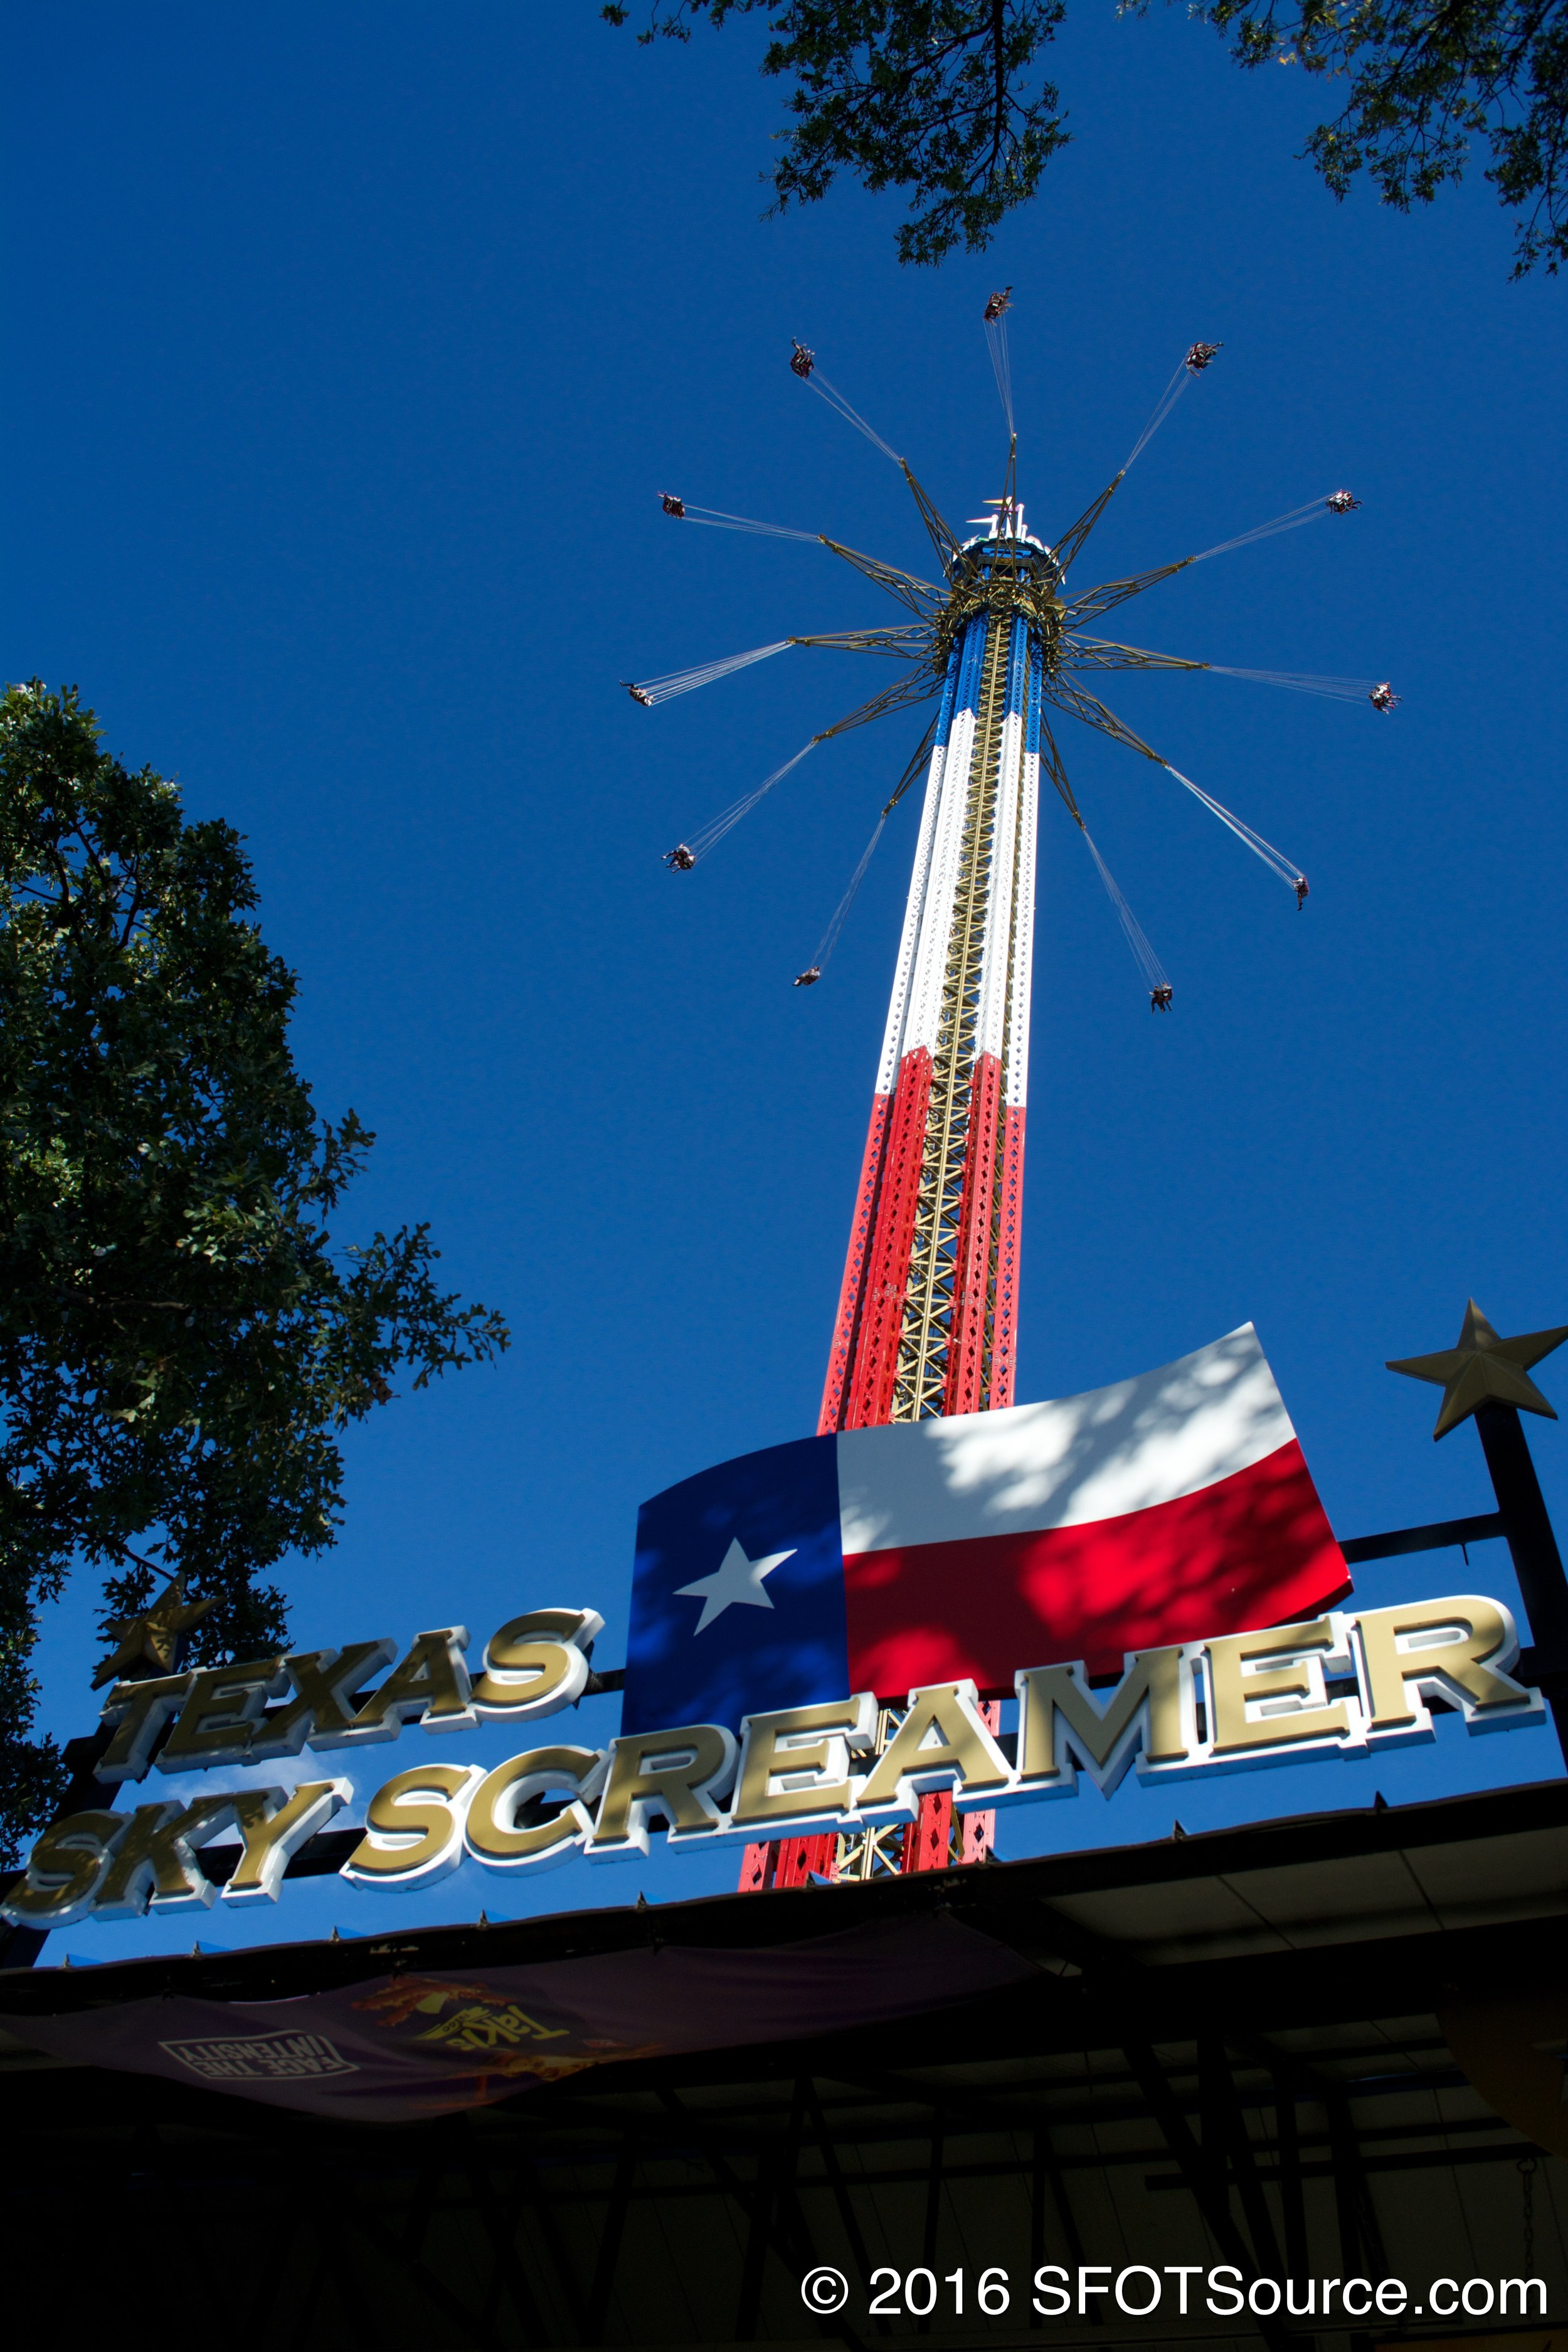 Texas SkyScreamer carries a red, white, and blue color scheme.